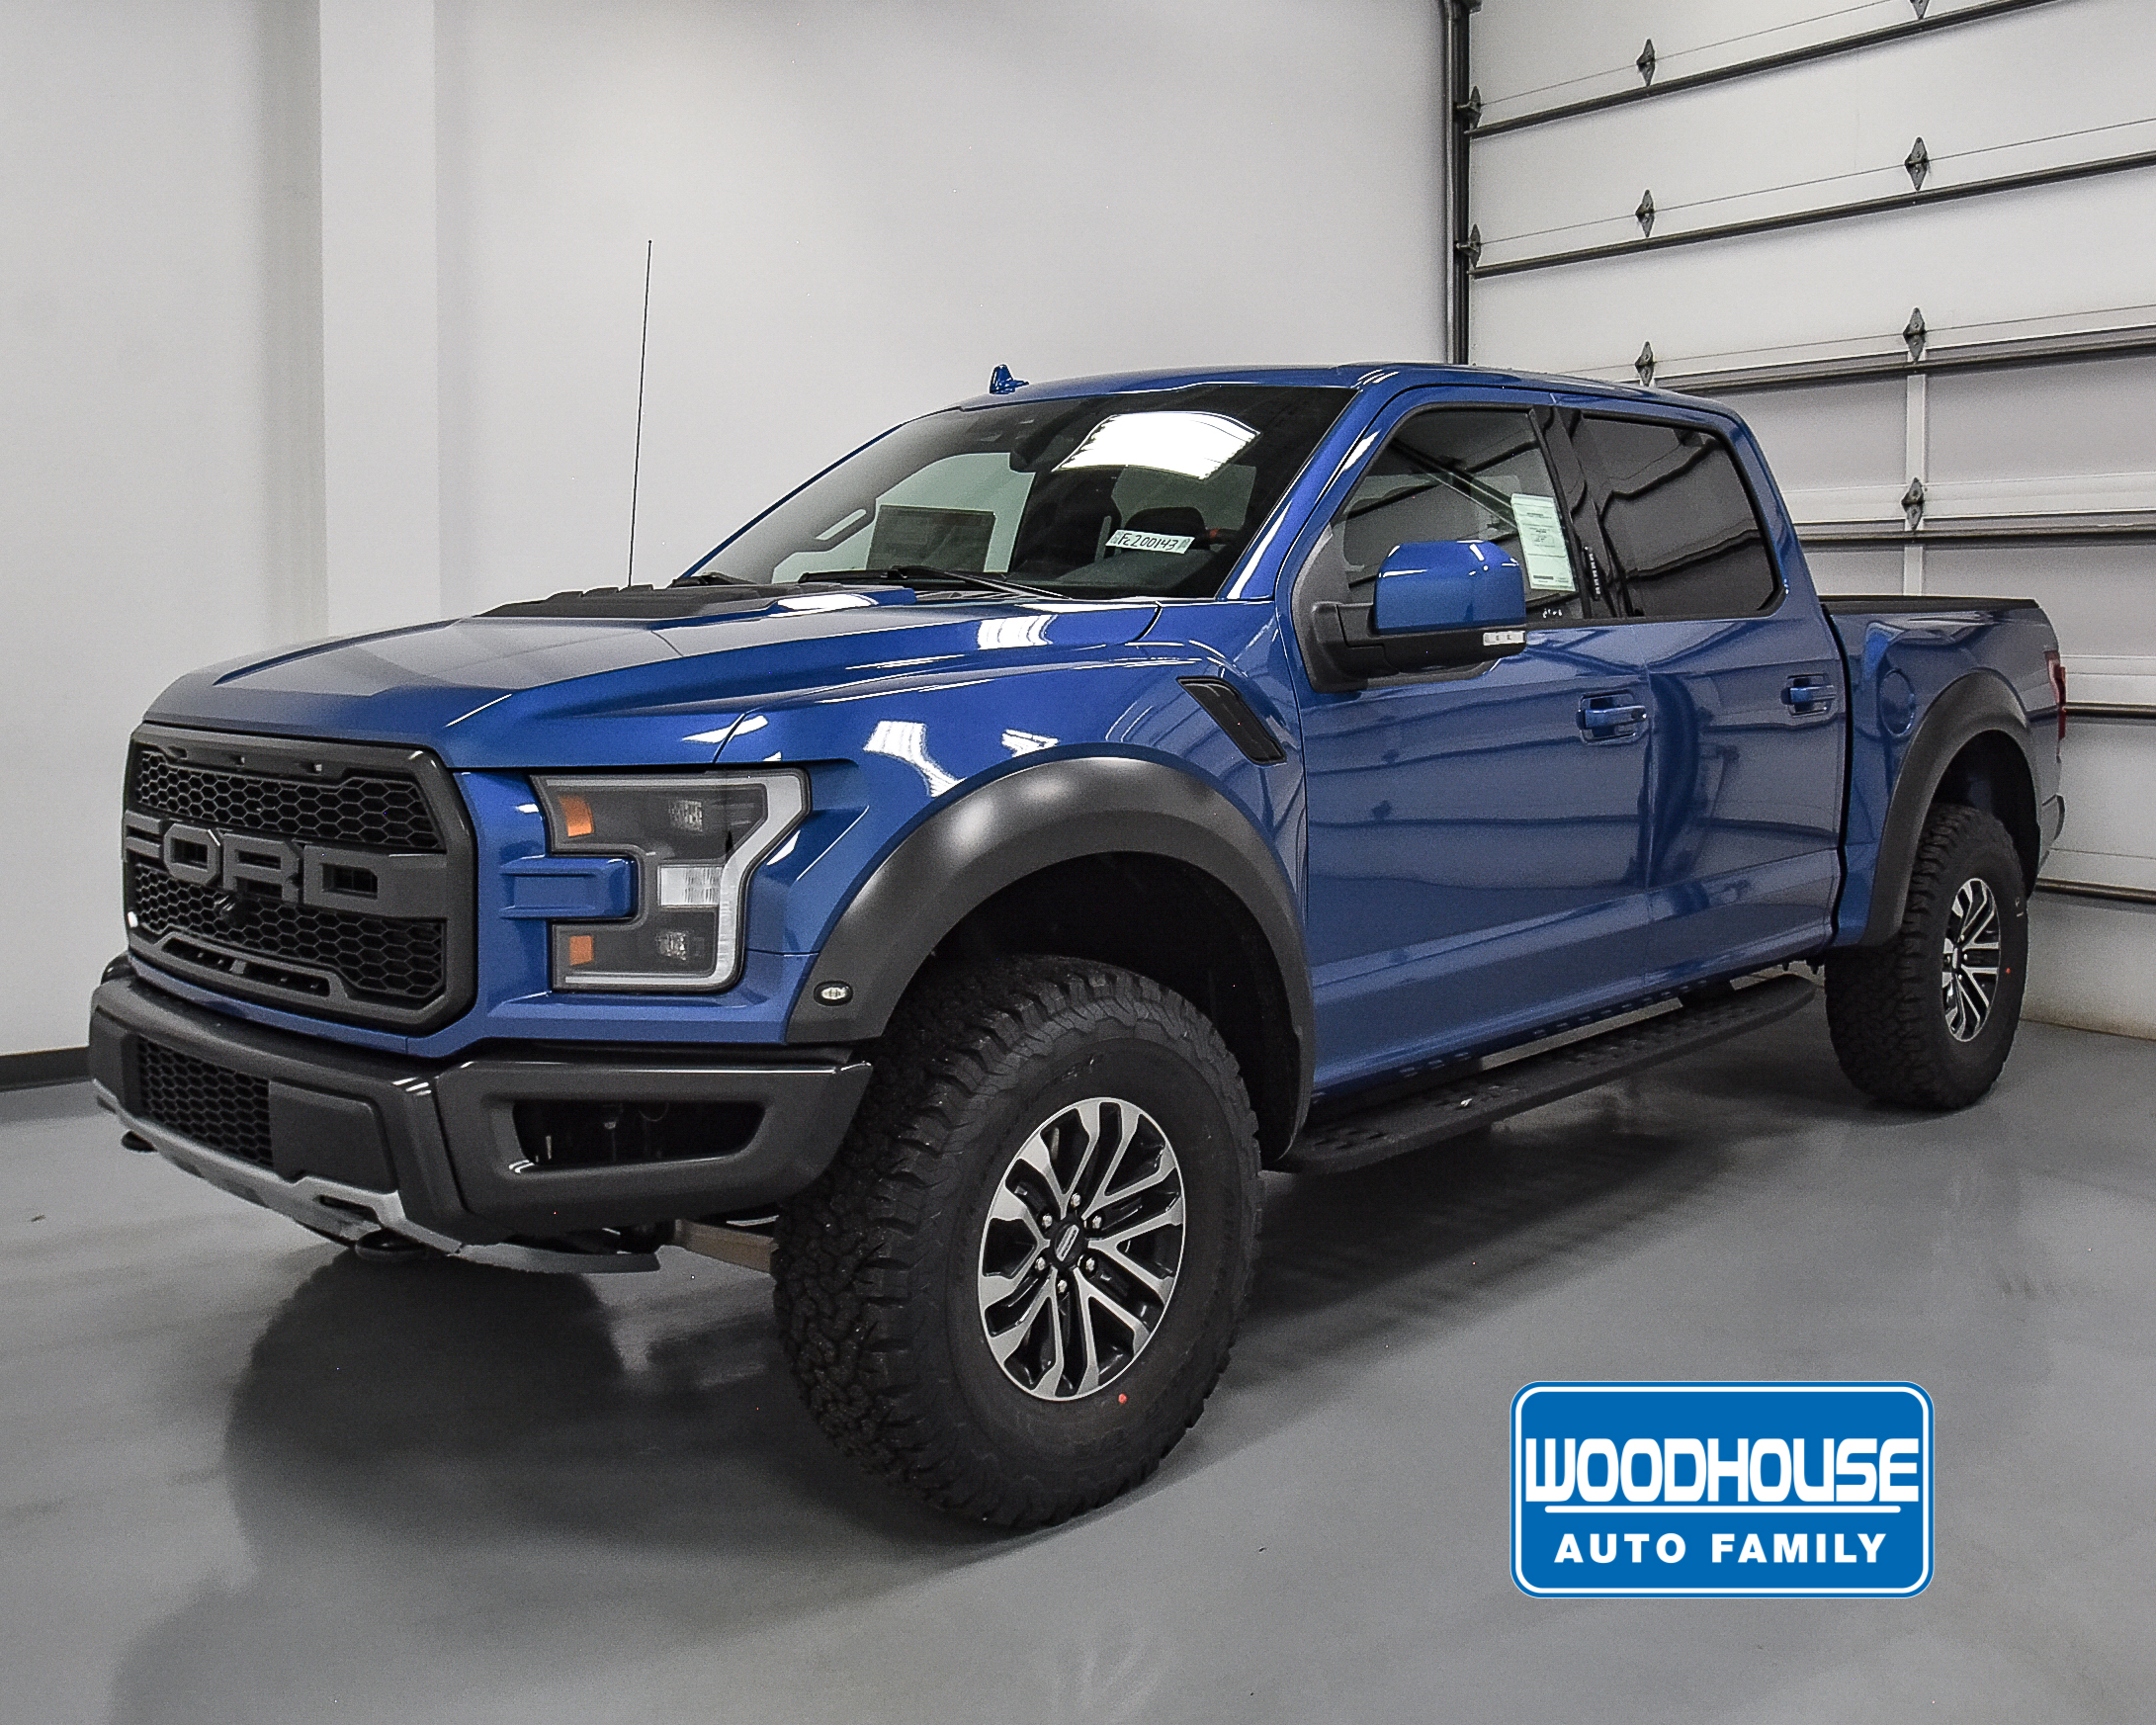 2020 Ford Raptor New Model and Performance